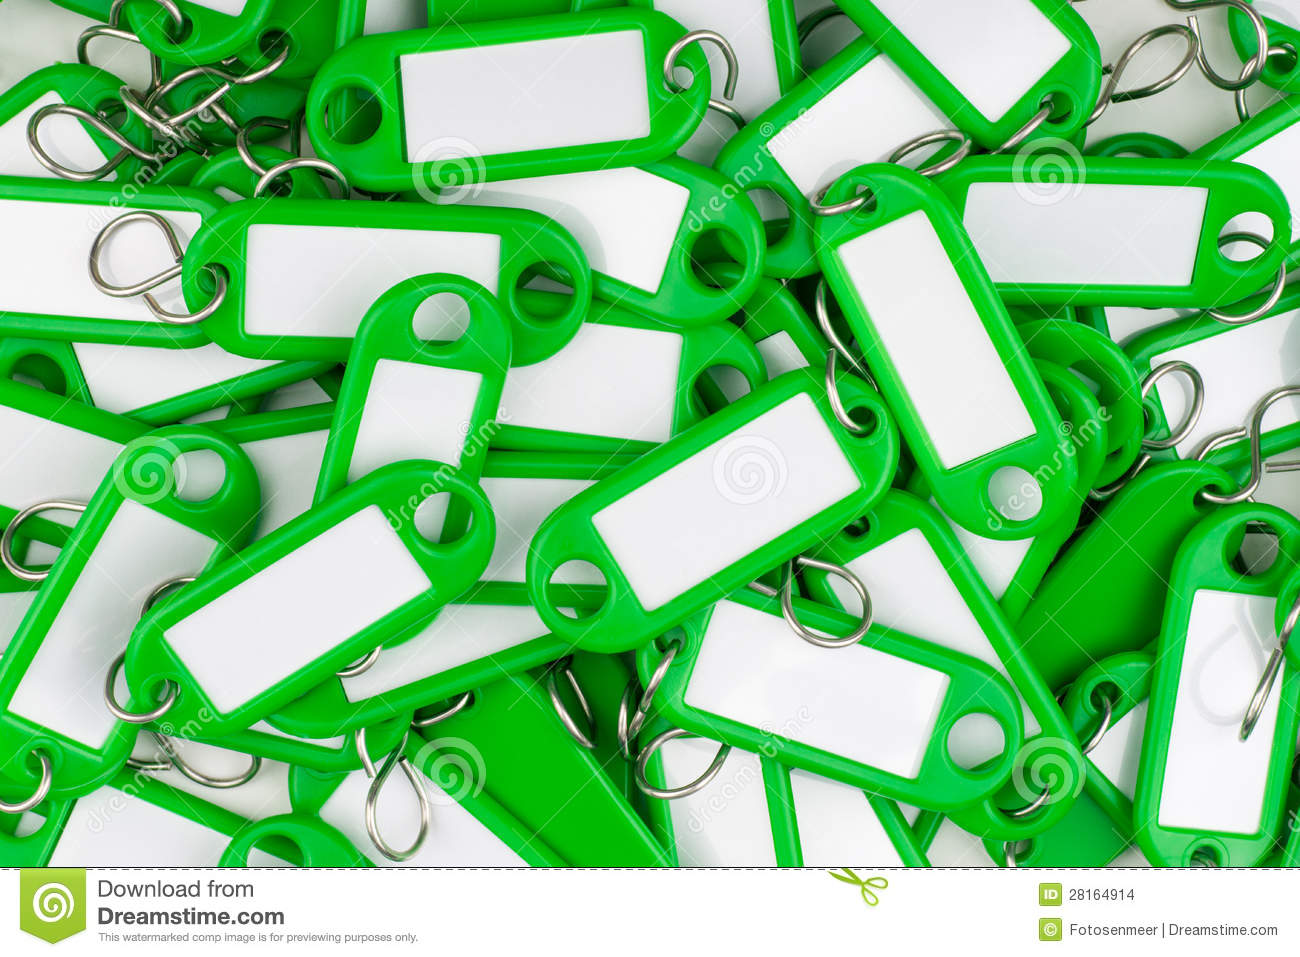 Green colored key rings stock photo  Image of label, bright